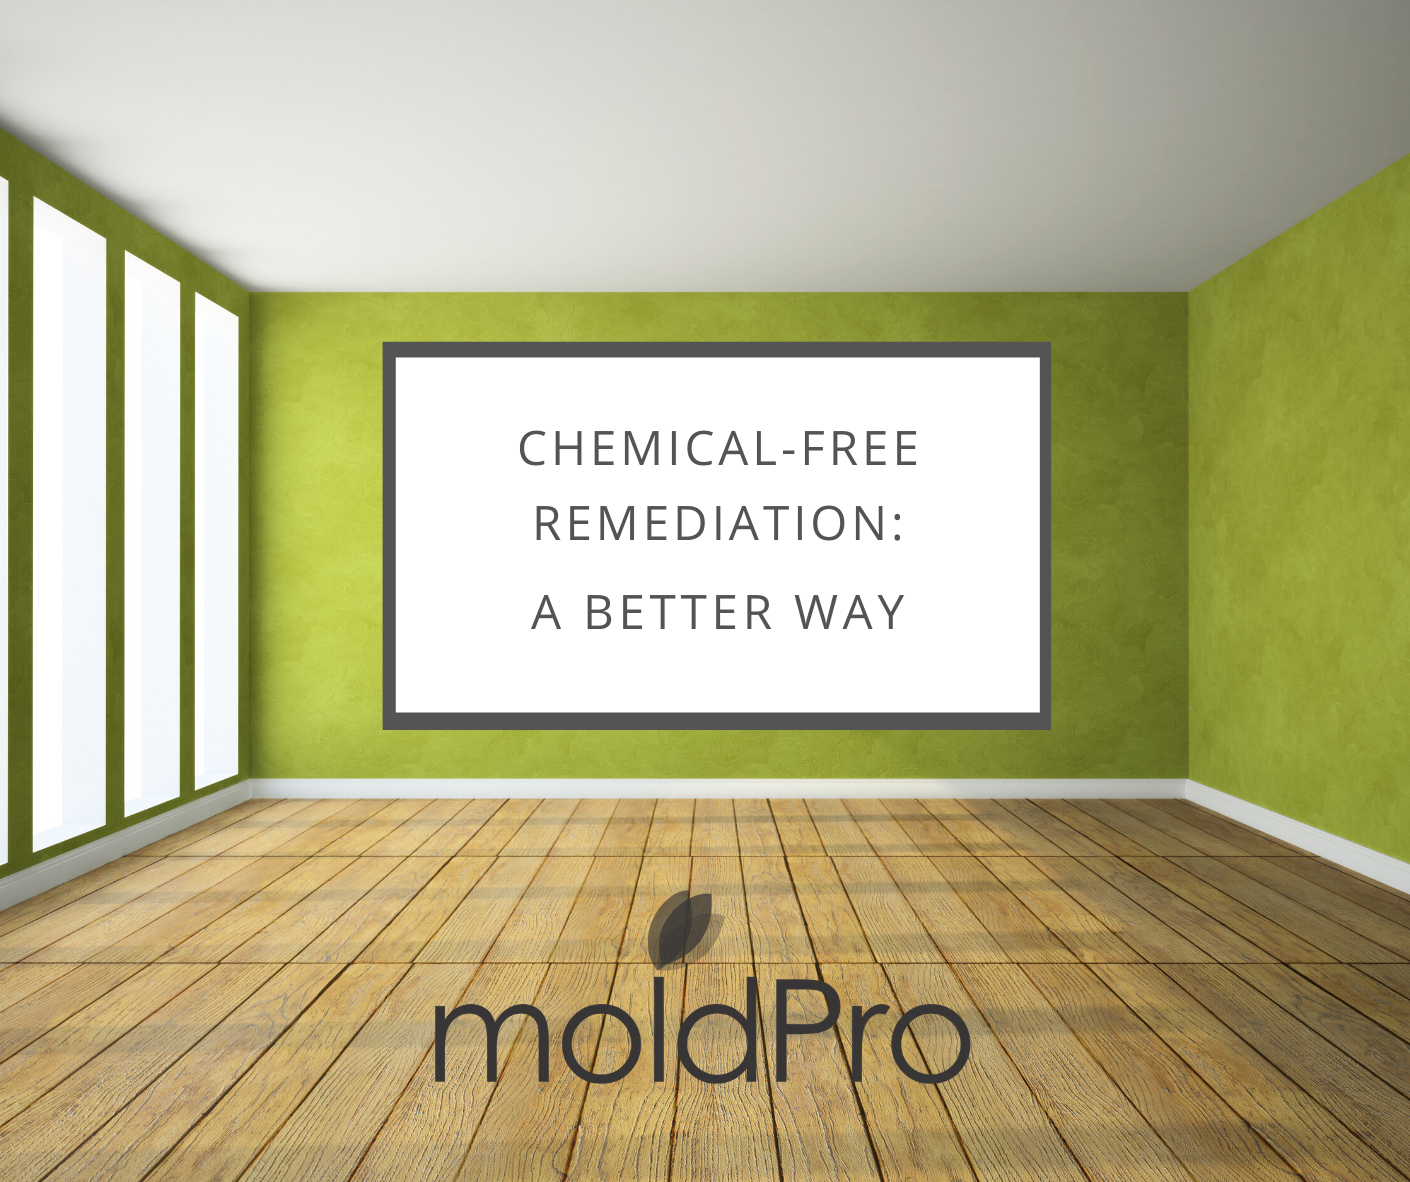 Chemical-Free Mold Remediation: The Healthier and Most Advanced Alternative for Your Mold Challenge